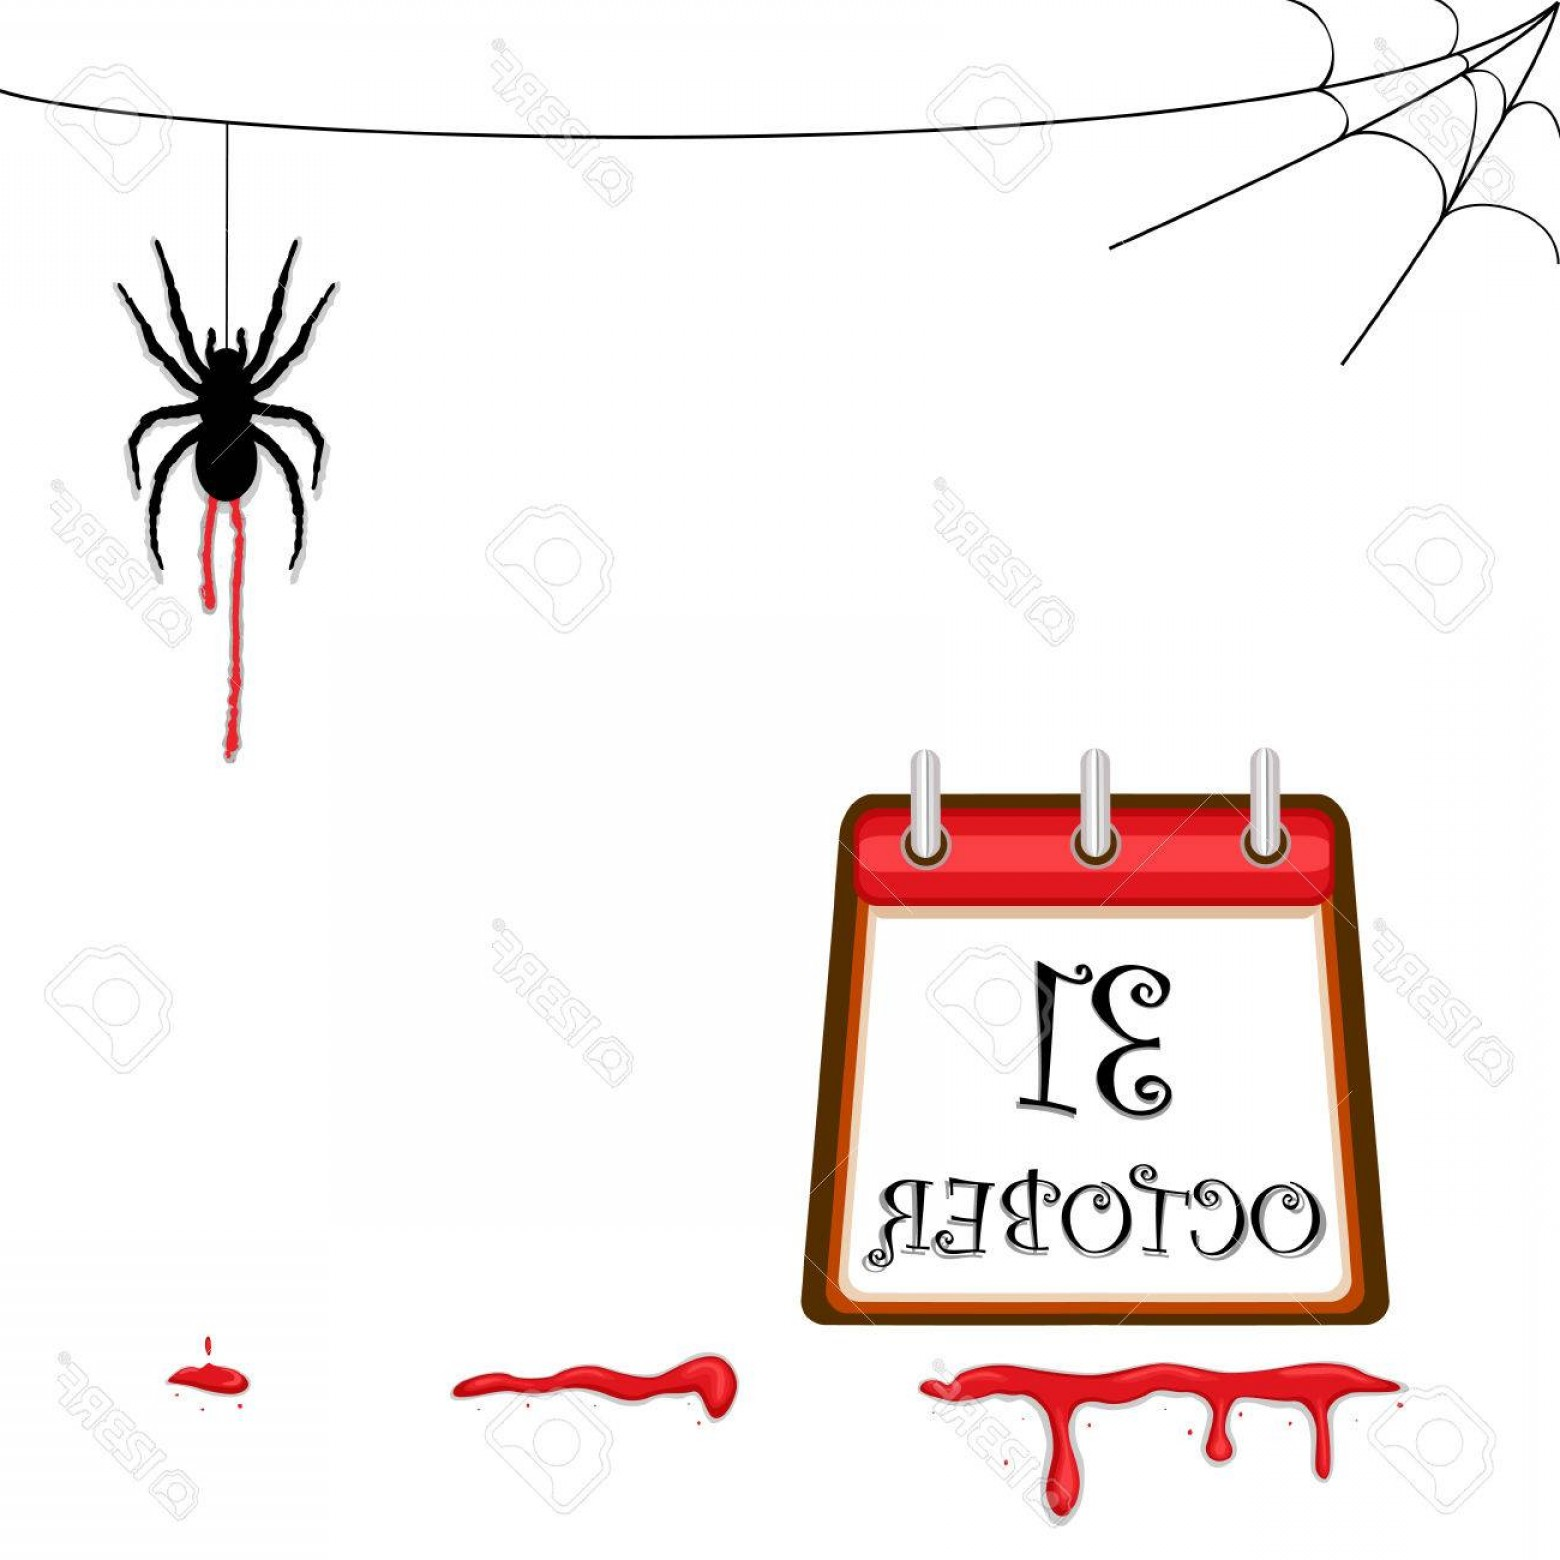 Easy Spider Vector Illustration: Photohalloween Celebration With Creepy Spider And Blood Trail Ai No Effects No Filters Easy Printing